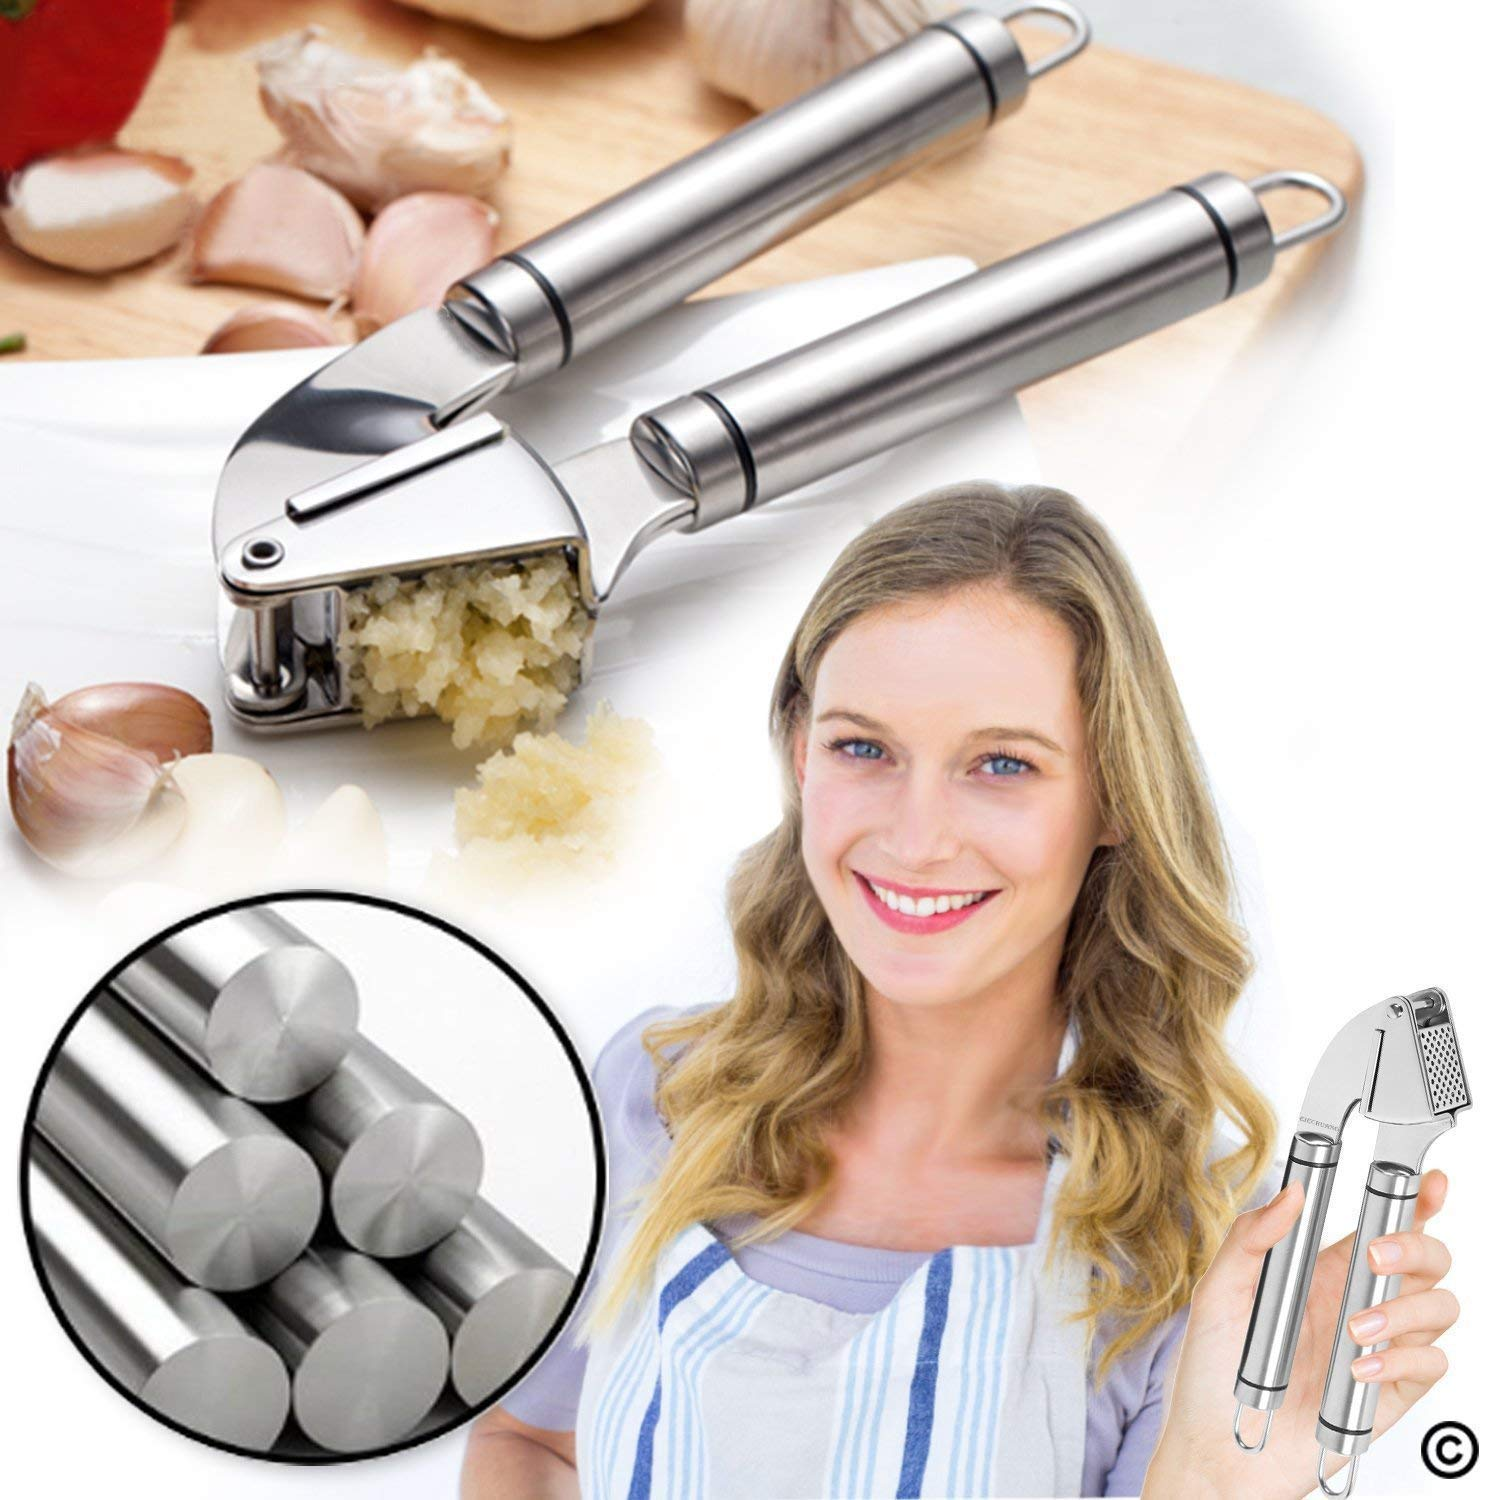 Garlic Press Heavy-Duty Stainless Steel 16 cm no peeling required!